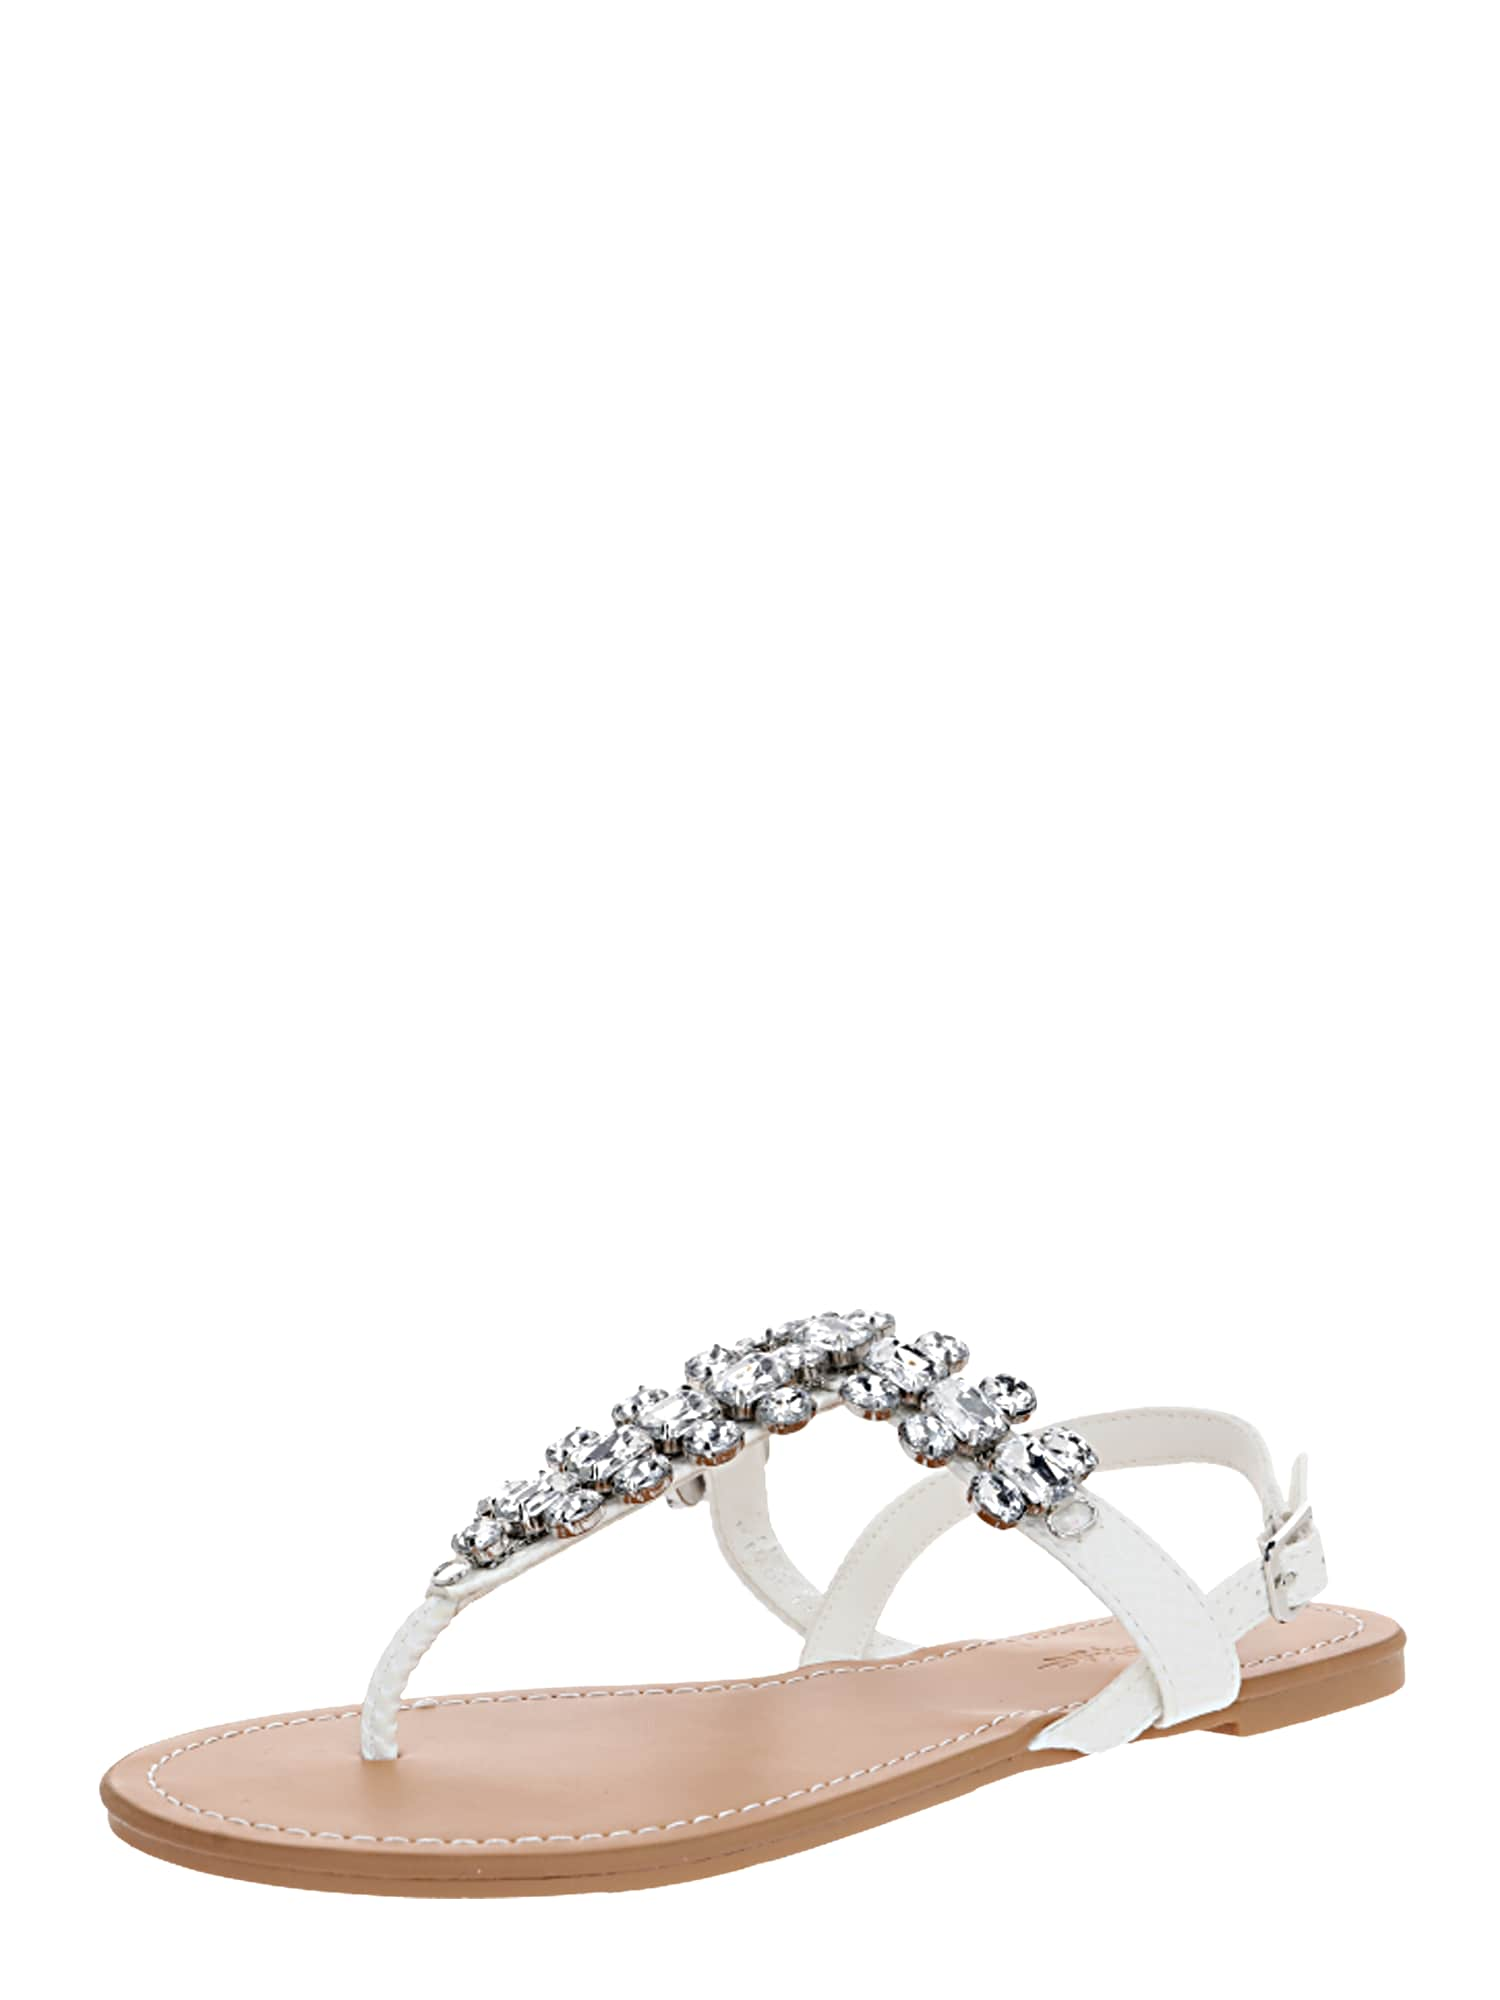 Miss Selfridge Žabky 'ELI White Toe Post Gem Sandals'  biela